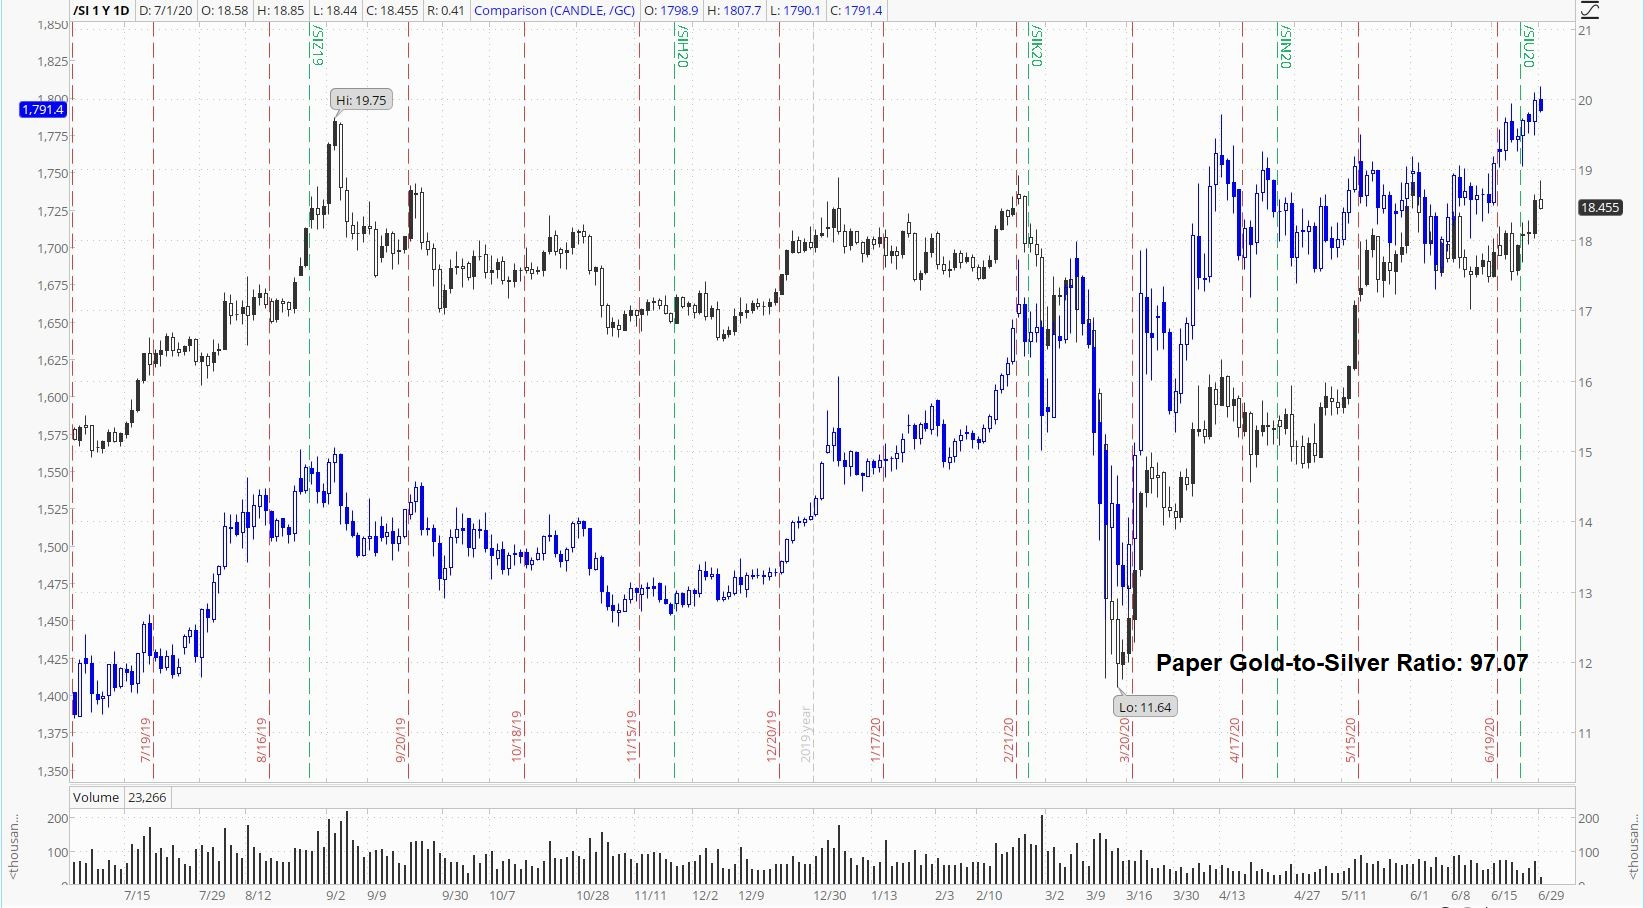 Paper Gold to Silver Ratio